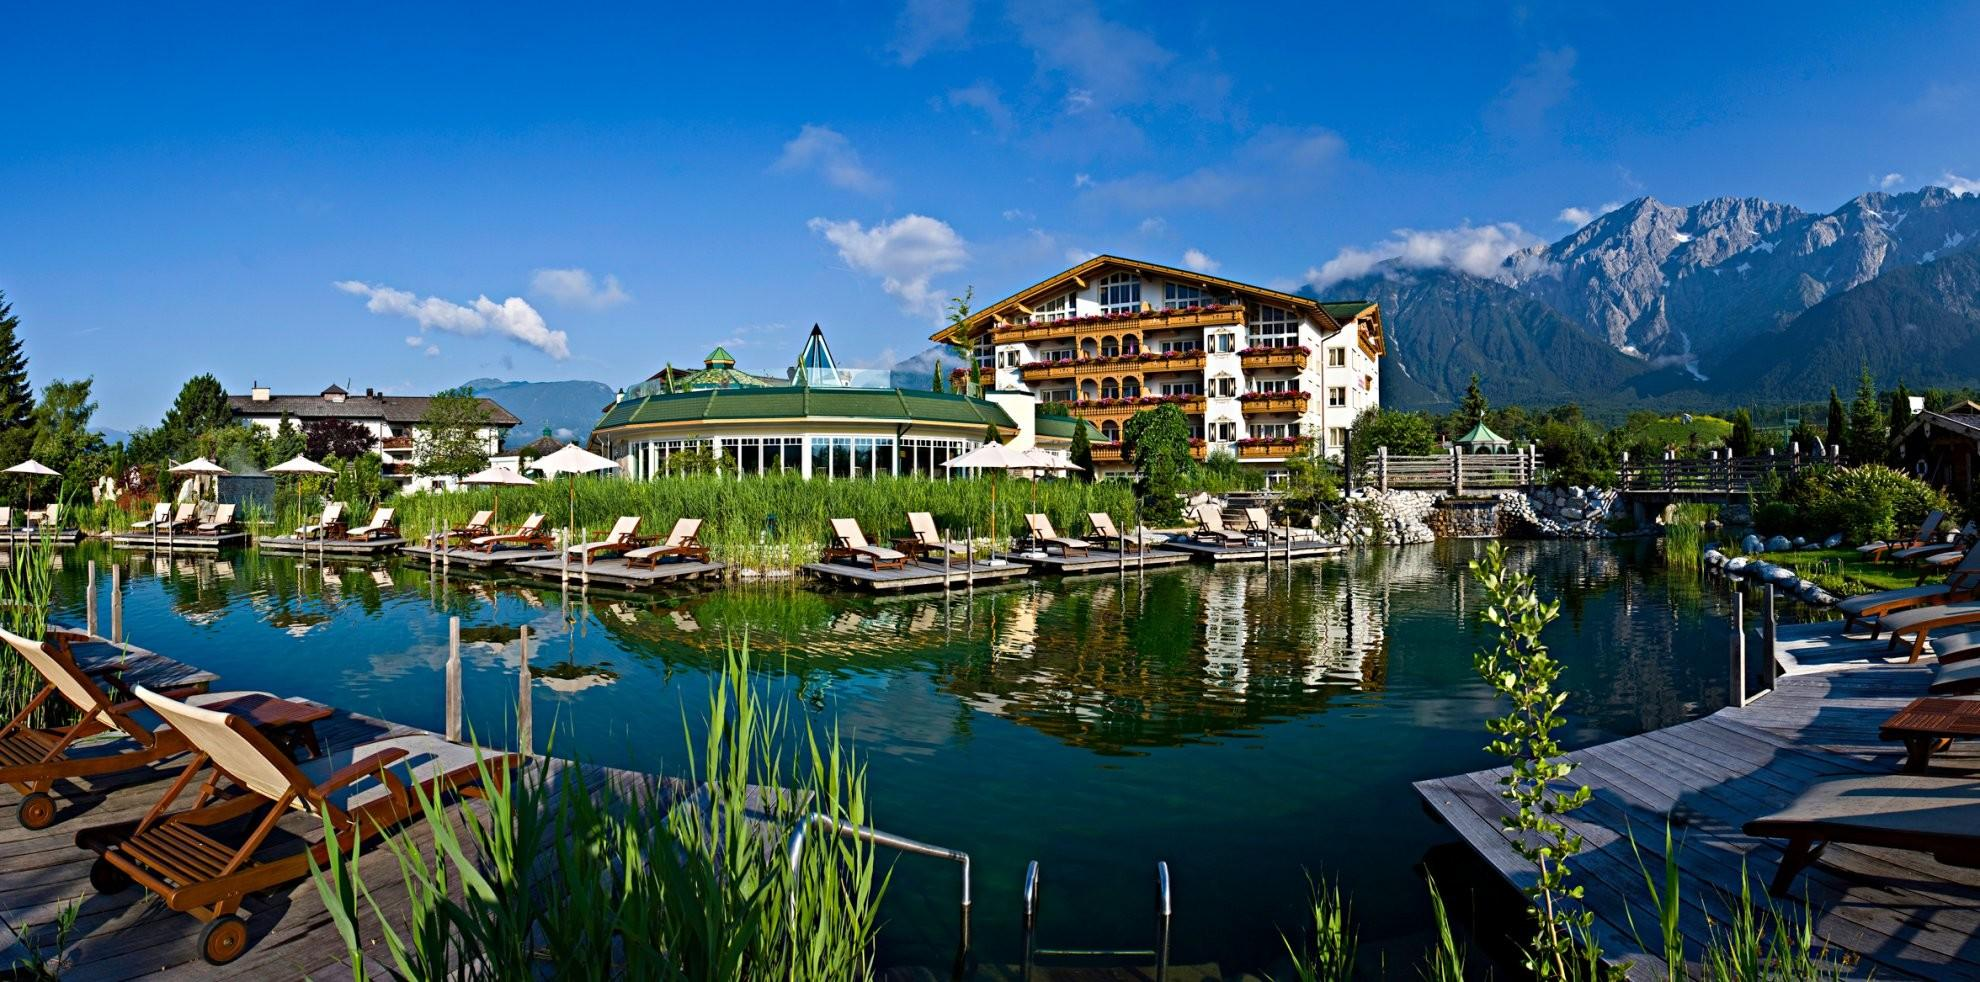 Austrian Spa Wellness Experiences Most People Have